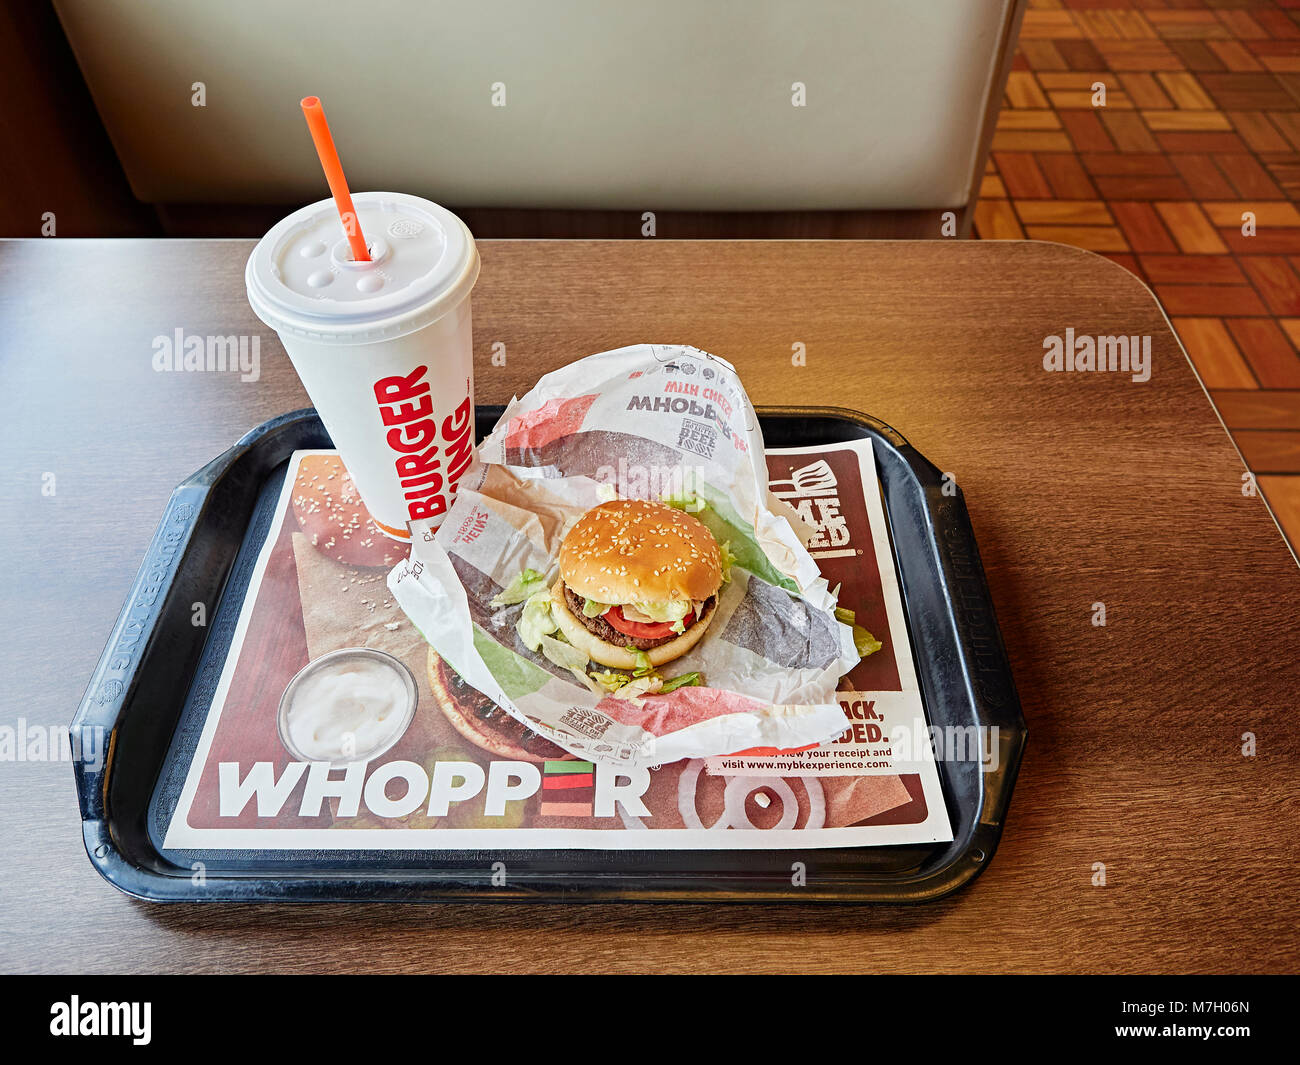 Burger King whopper hamburger and cold drink on the fast food restaurant dinner tray. - Stock Image